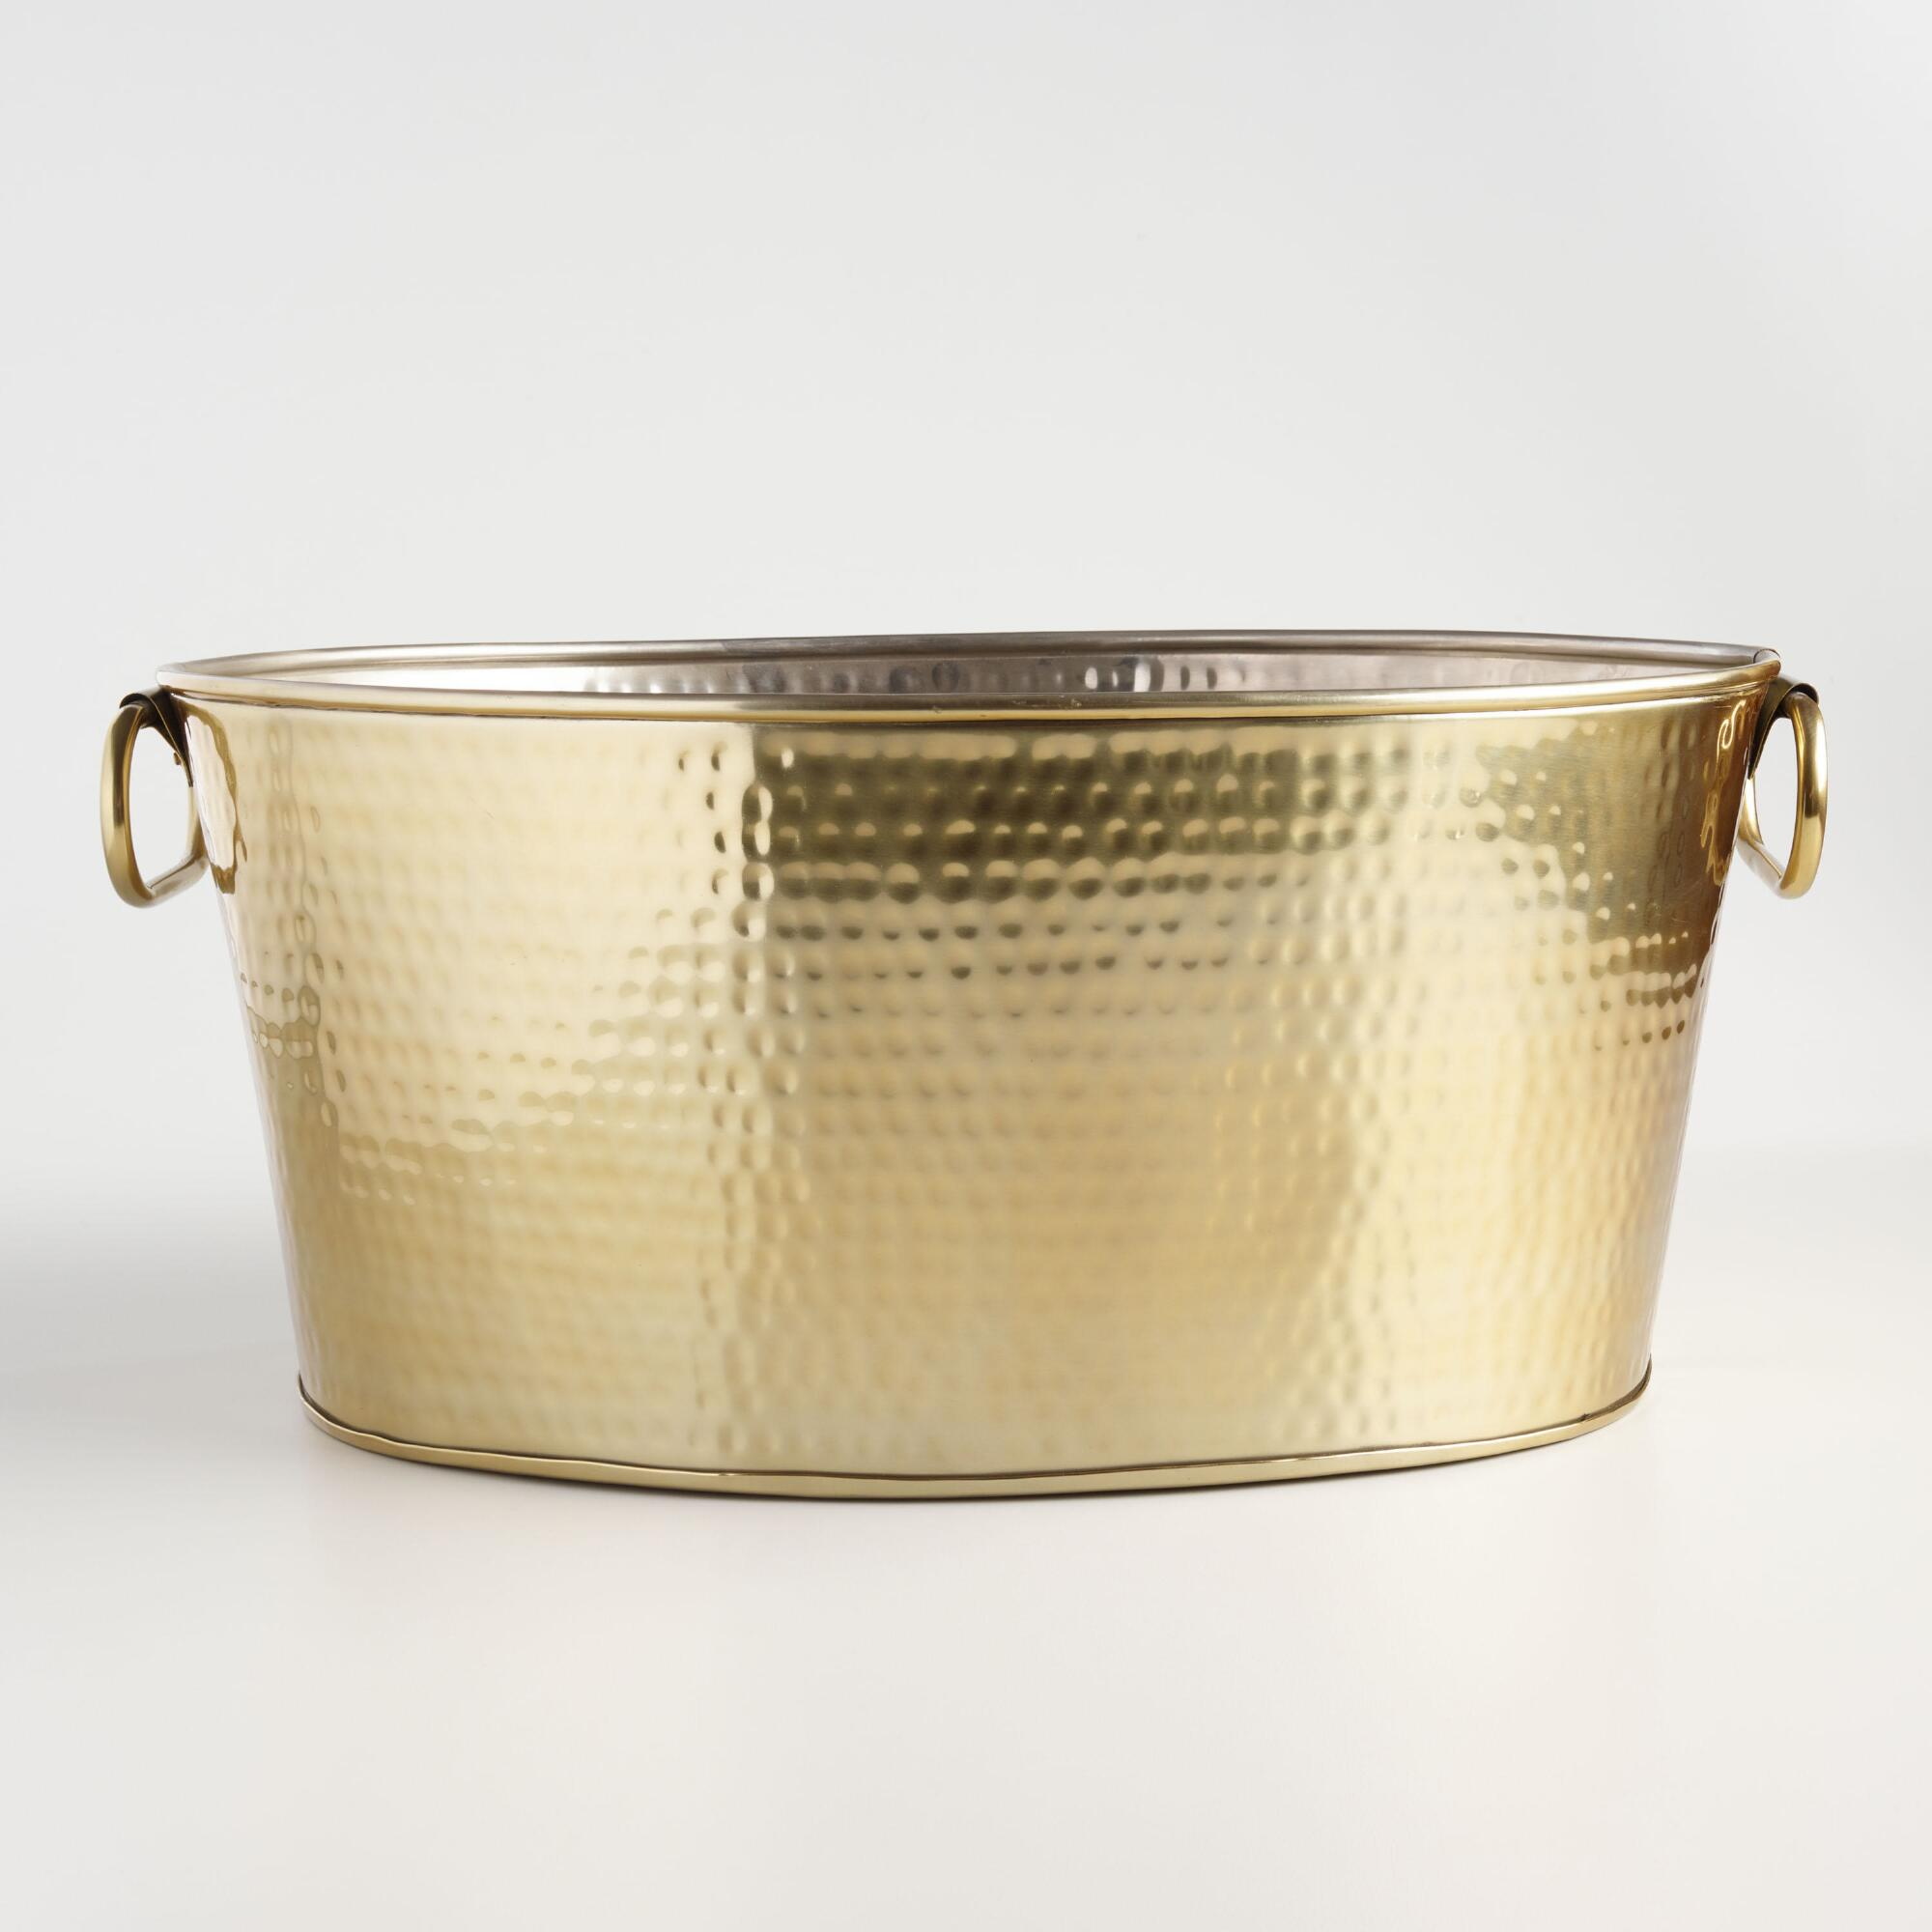 Hammered Gold Stainless Steel Beverage Tub